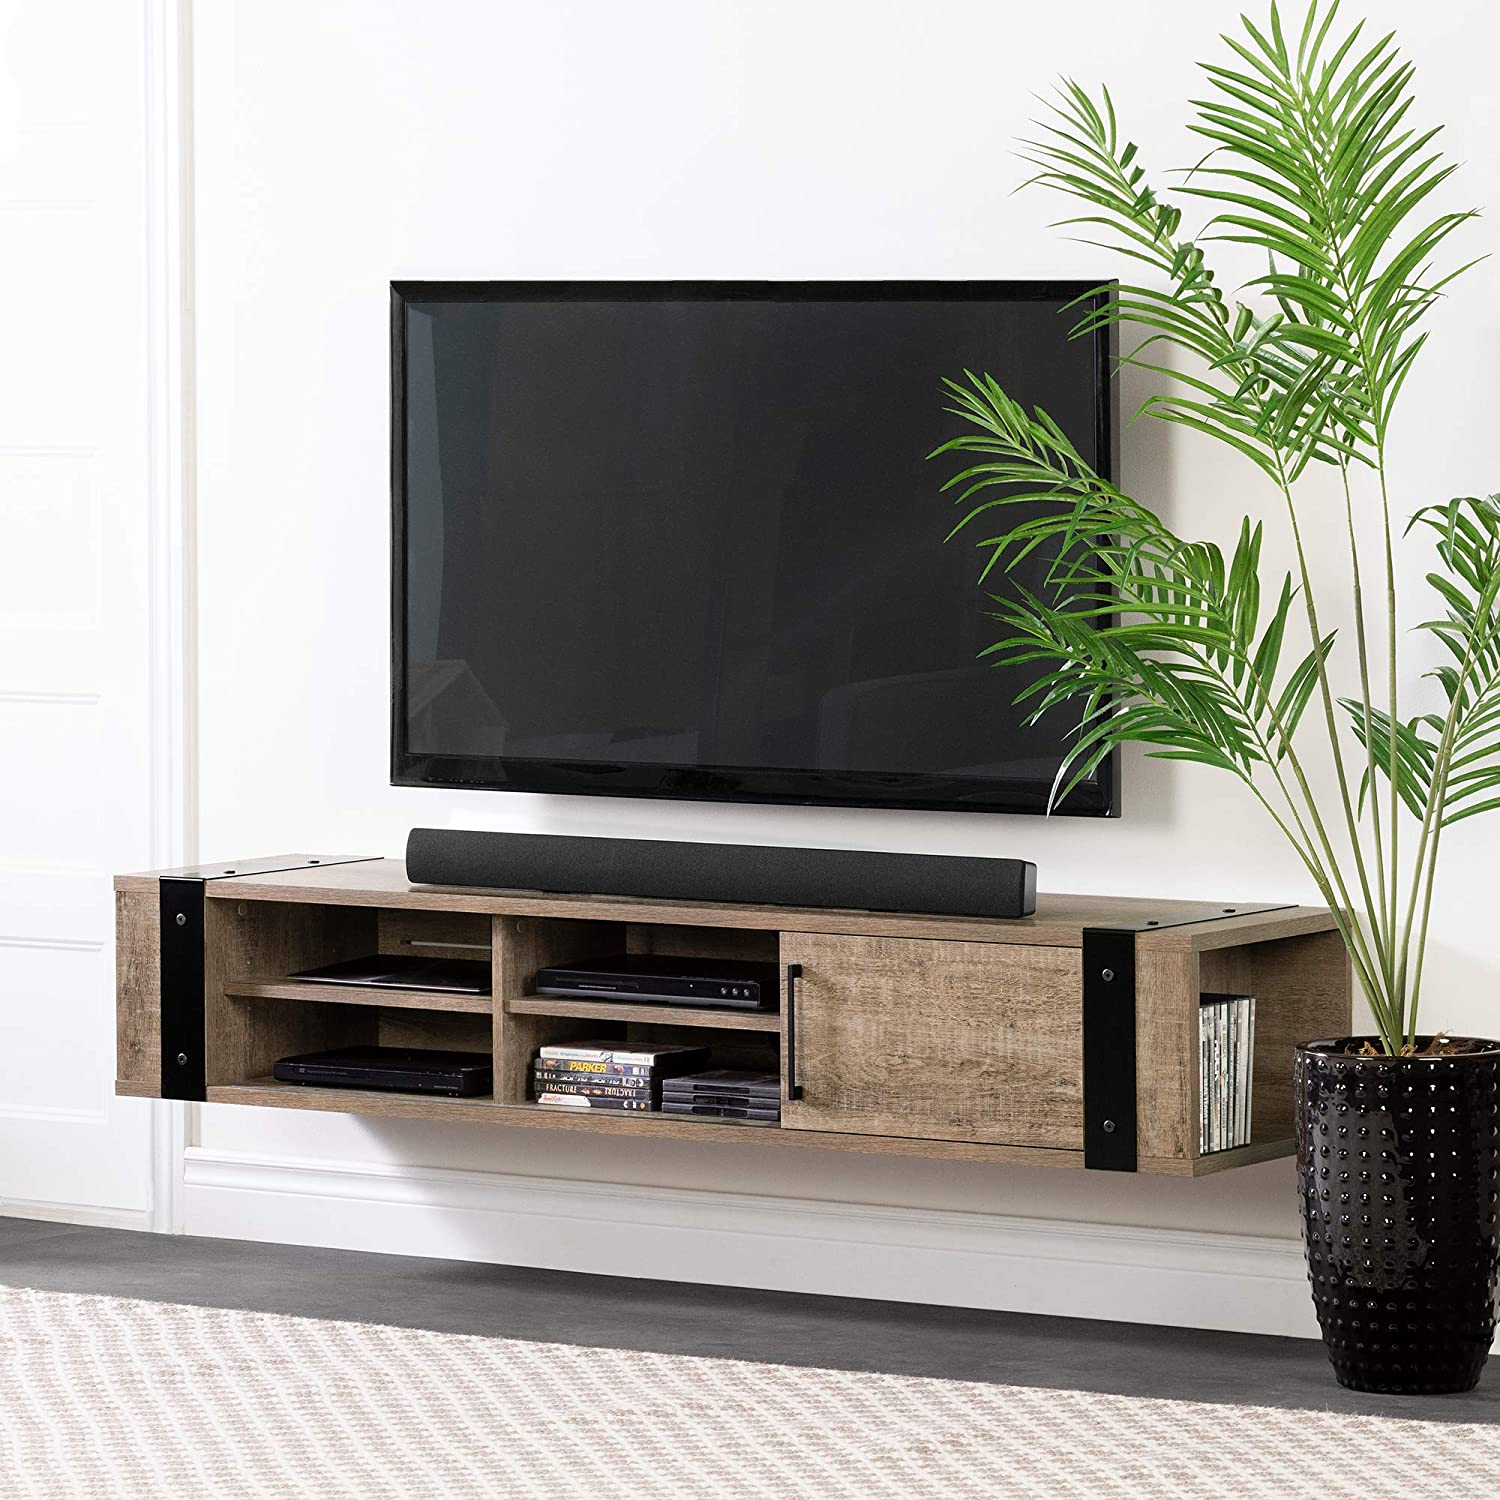 South Shore Munich 68 Wall Mounted Media Console-Weathered Oak